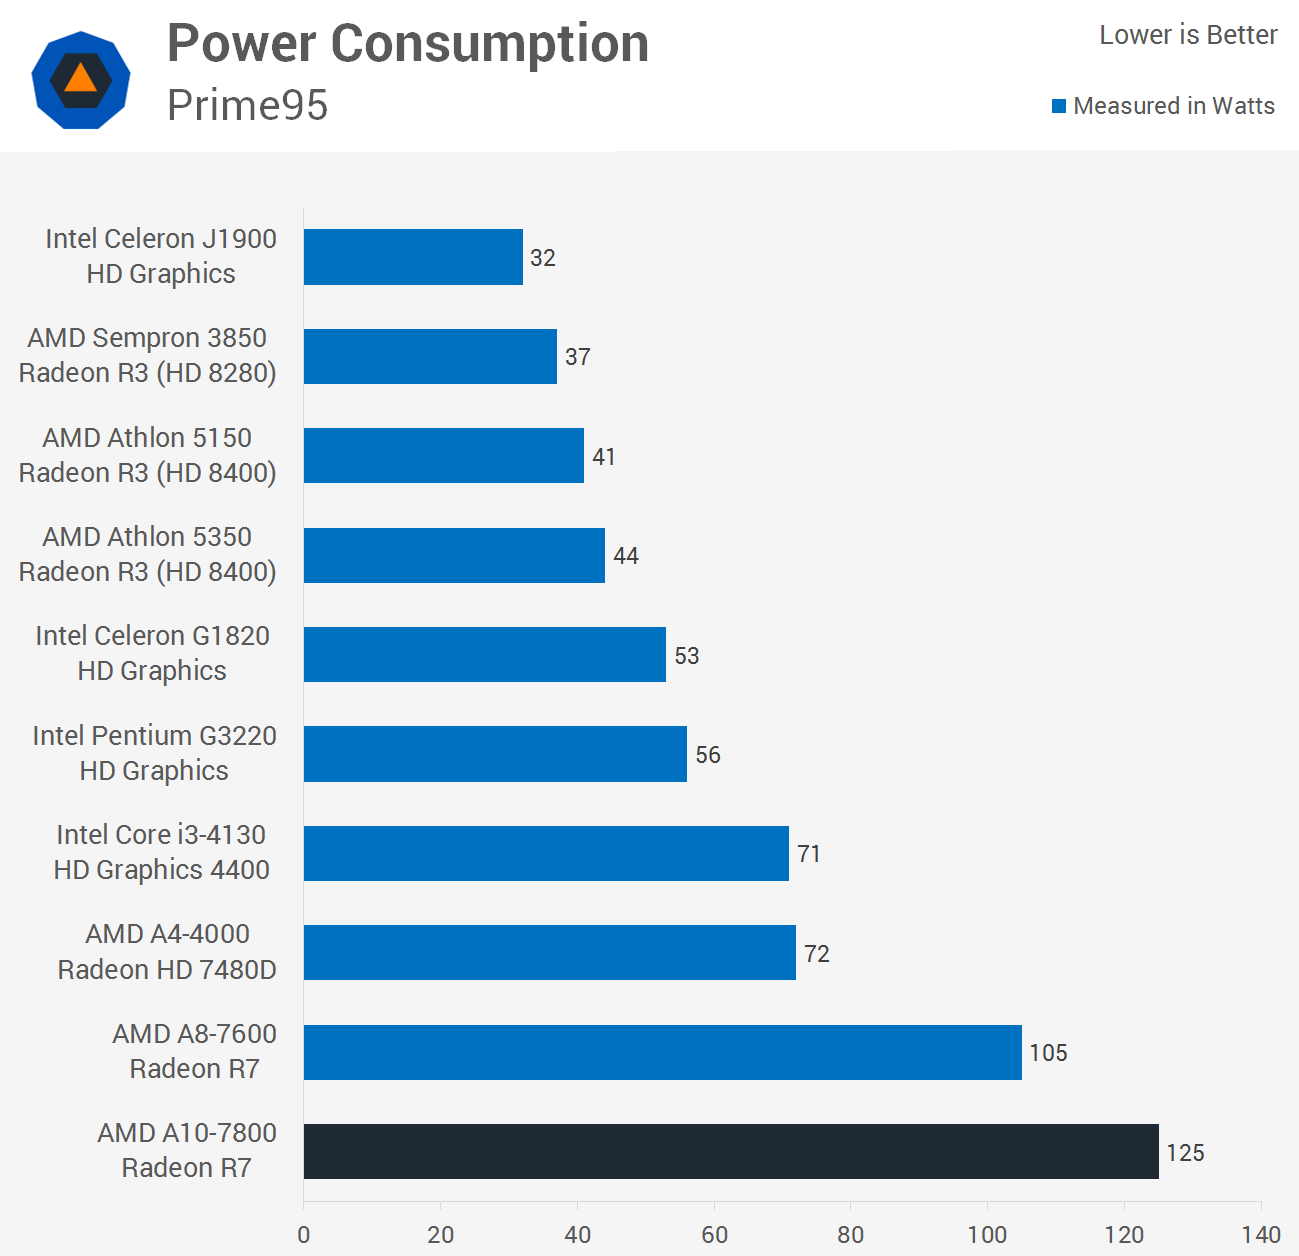 Amd A10 7800 Kaveri Apu Review Power Consumption Wrap Up Techspot Processor I3 4130 Placing All Four Cores Under Full Load Saw The System Consume 125 Watts Which Was 19 More Than A8 7600 And 76 Core